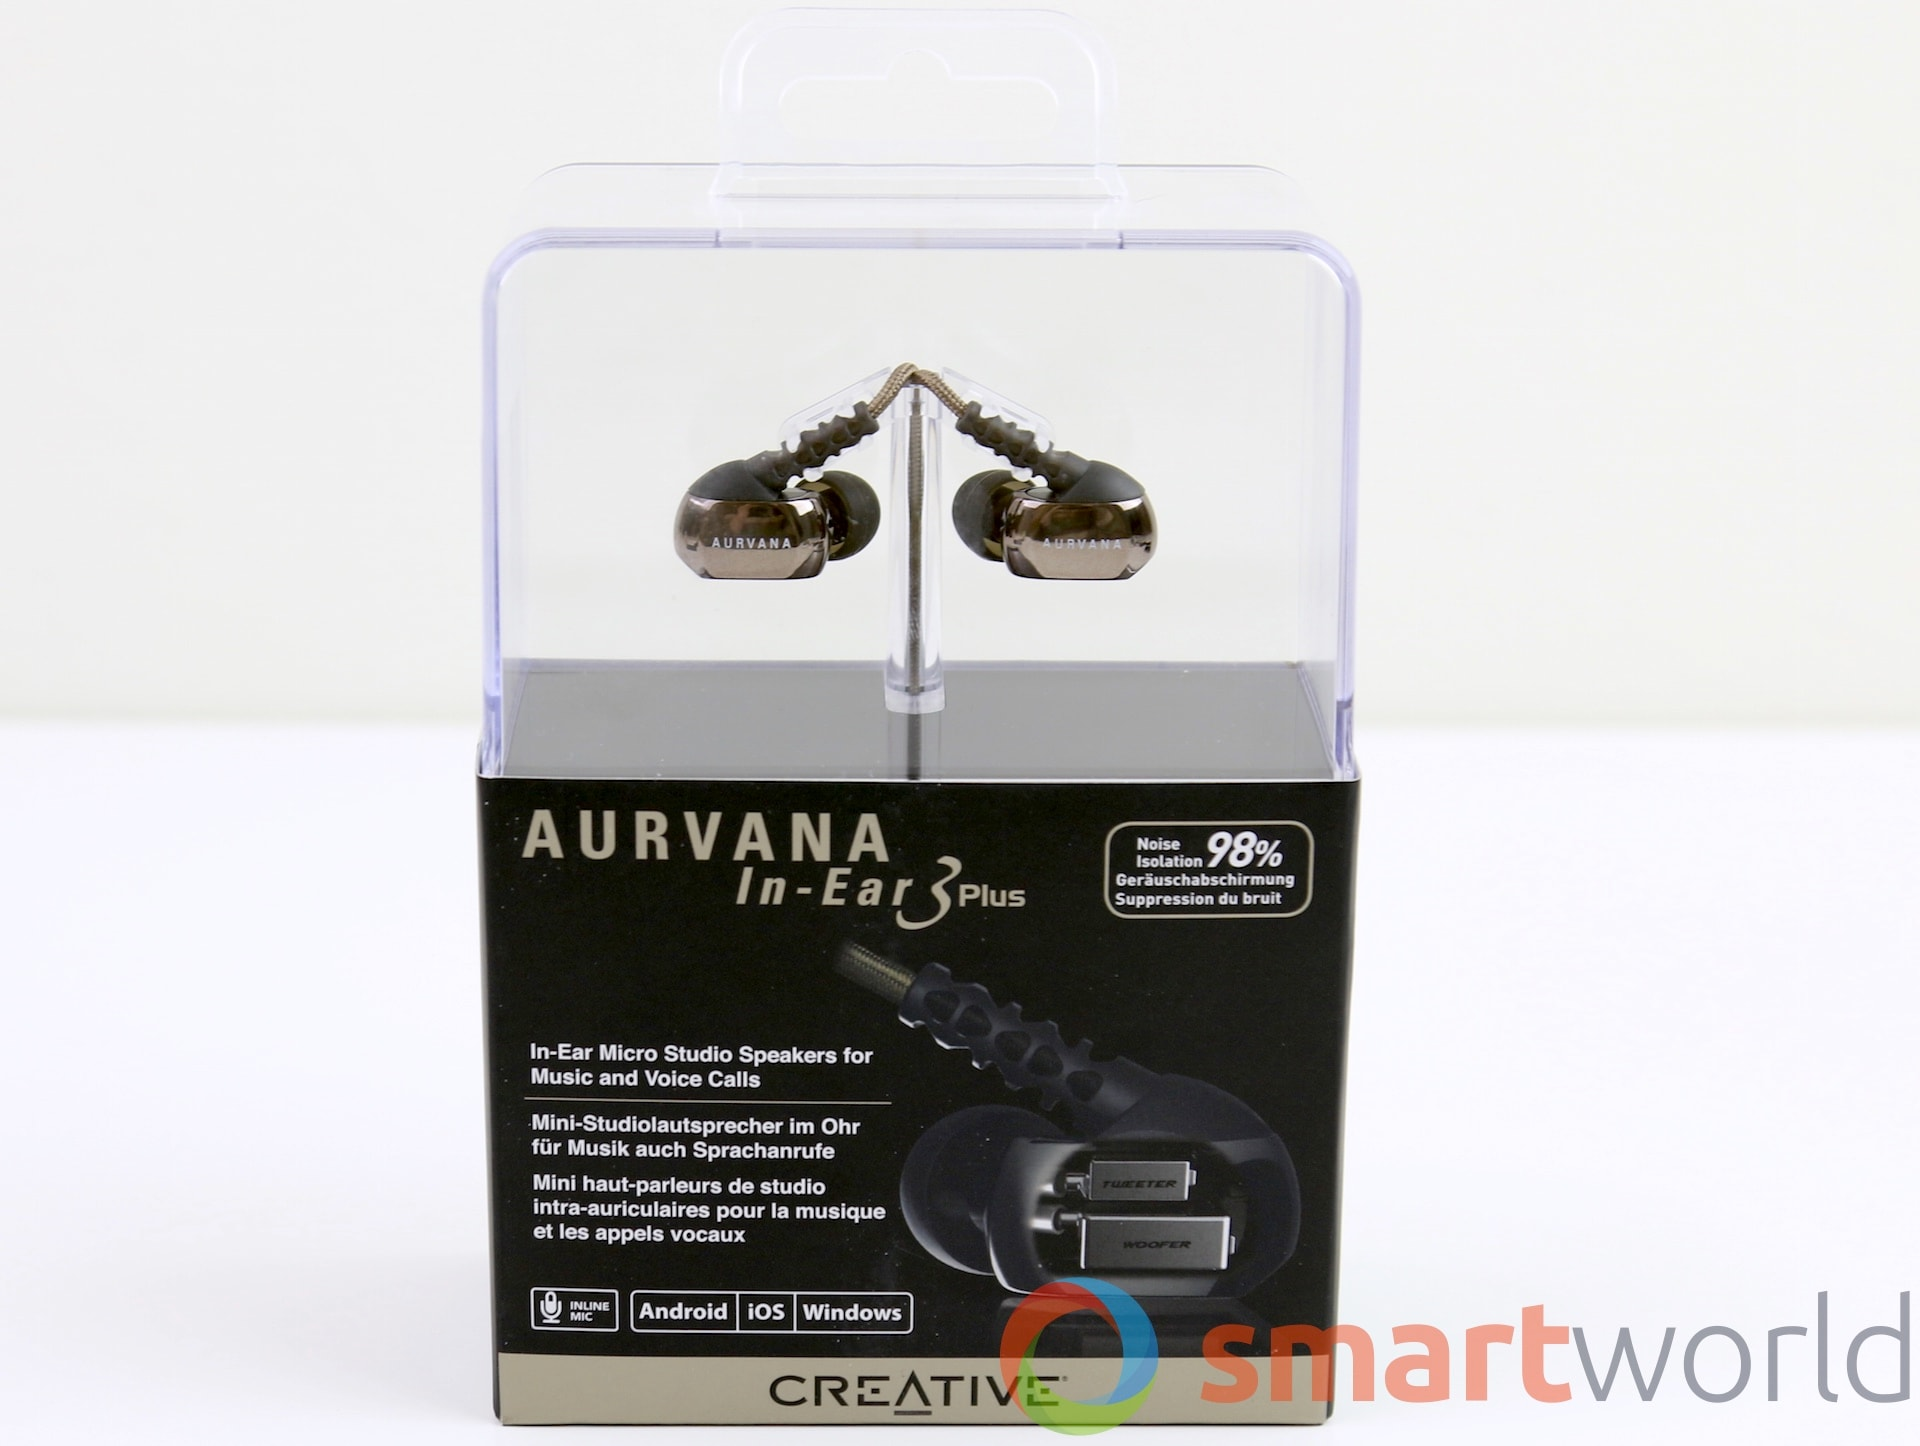 Aurvana In-Ear3 Plus -1